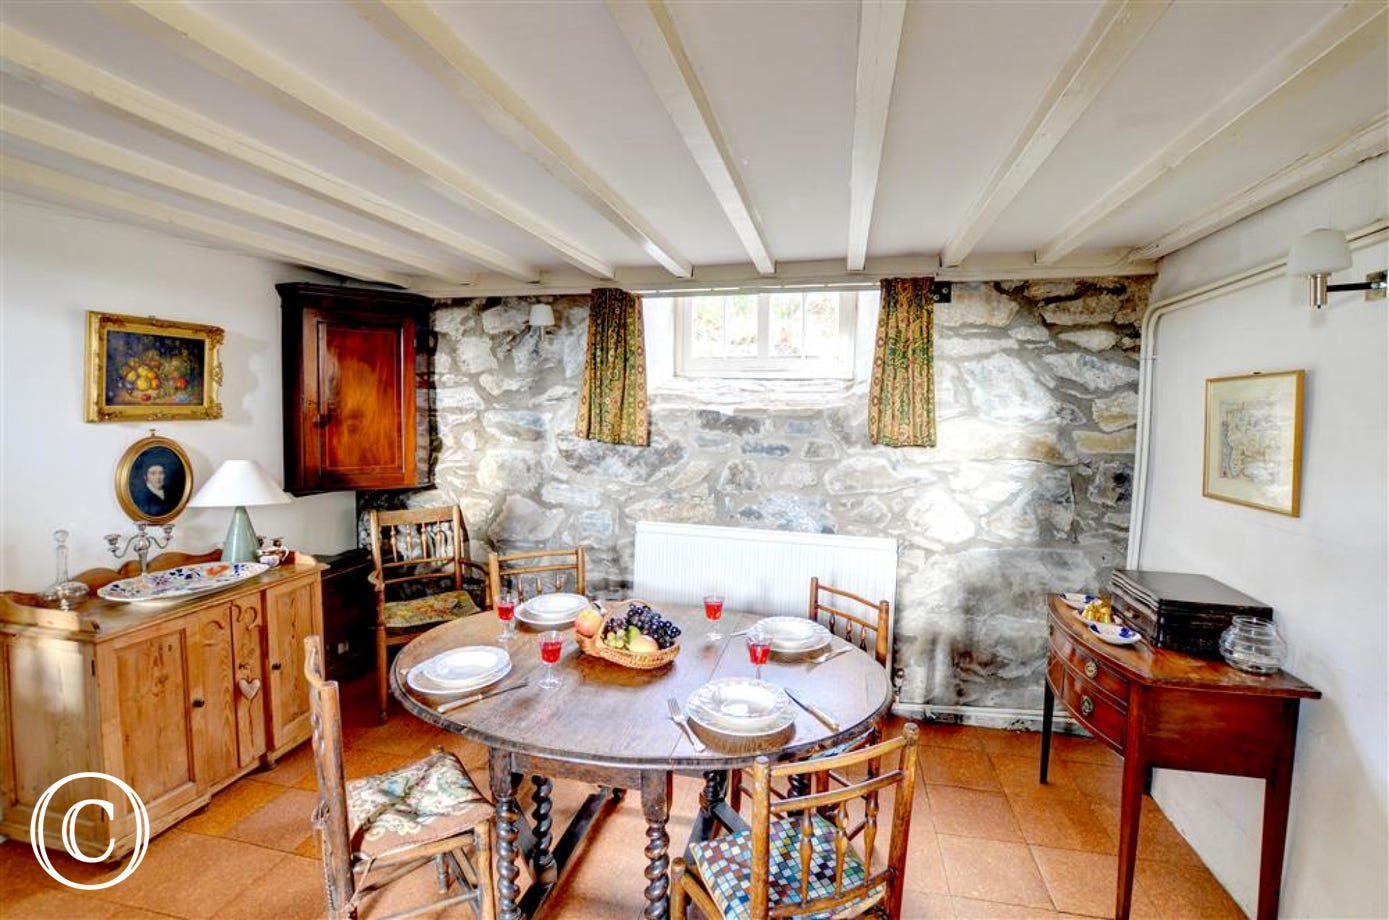 The dinign room has exposed stone wall, antique furniture, crockery and cutlery